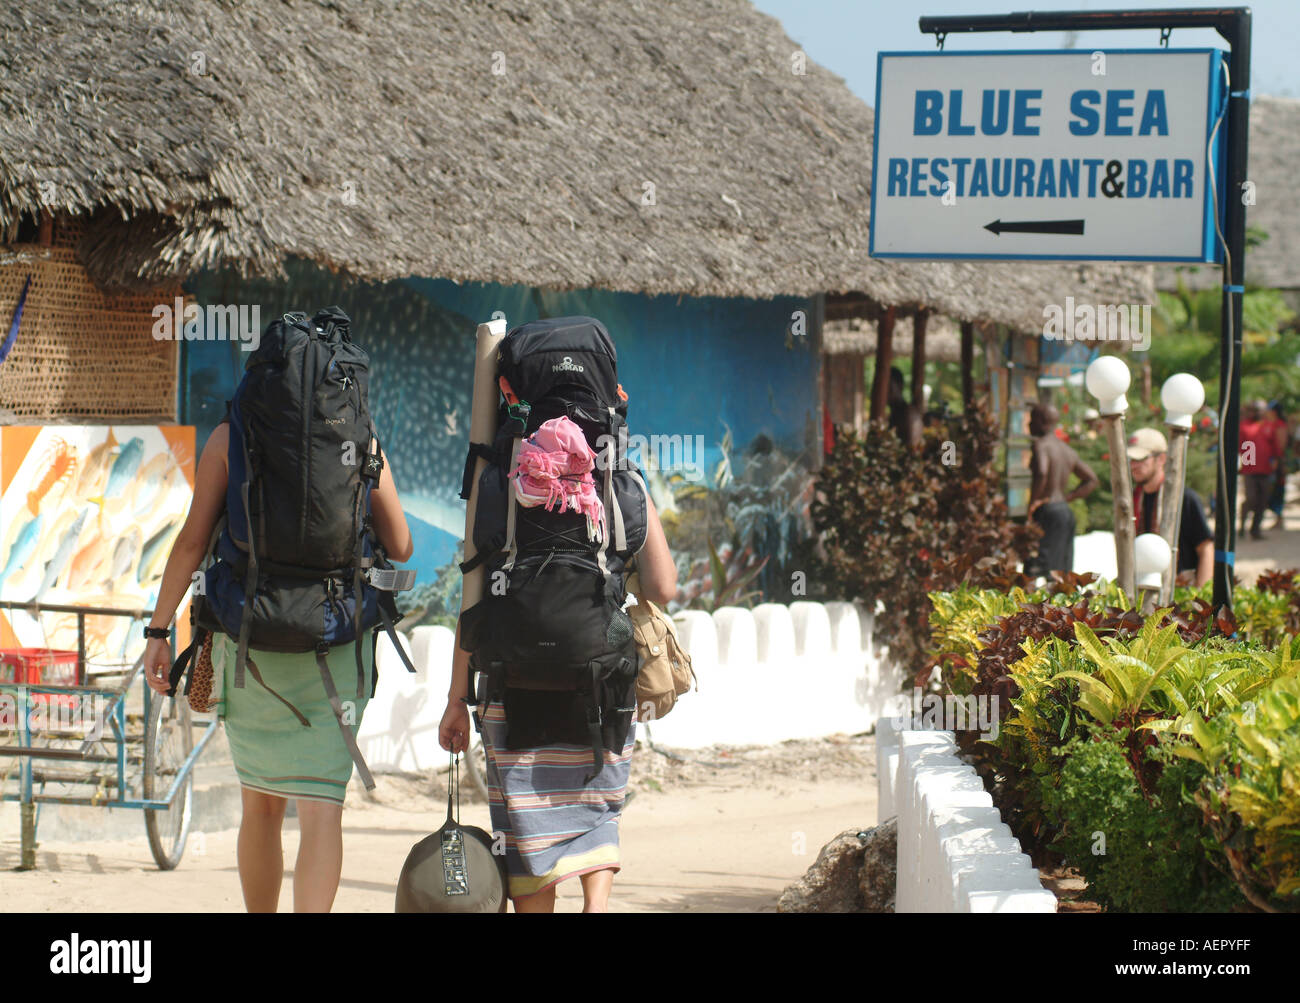 Backpackers arrive on Nungwi beach in Zanzibar. Africa - Stock Image